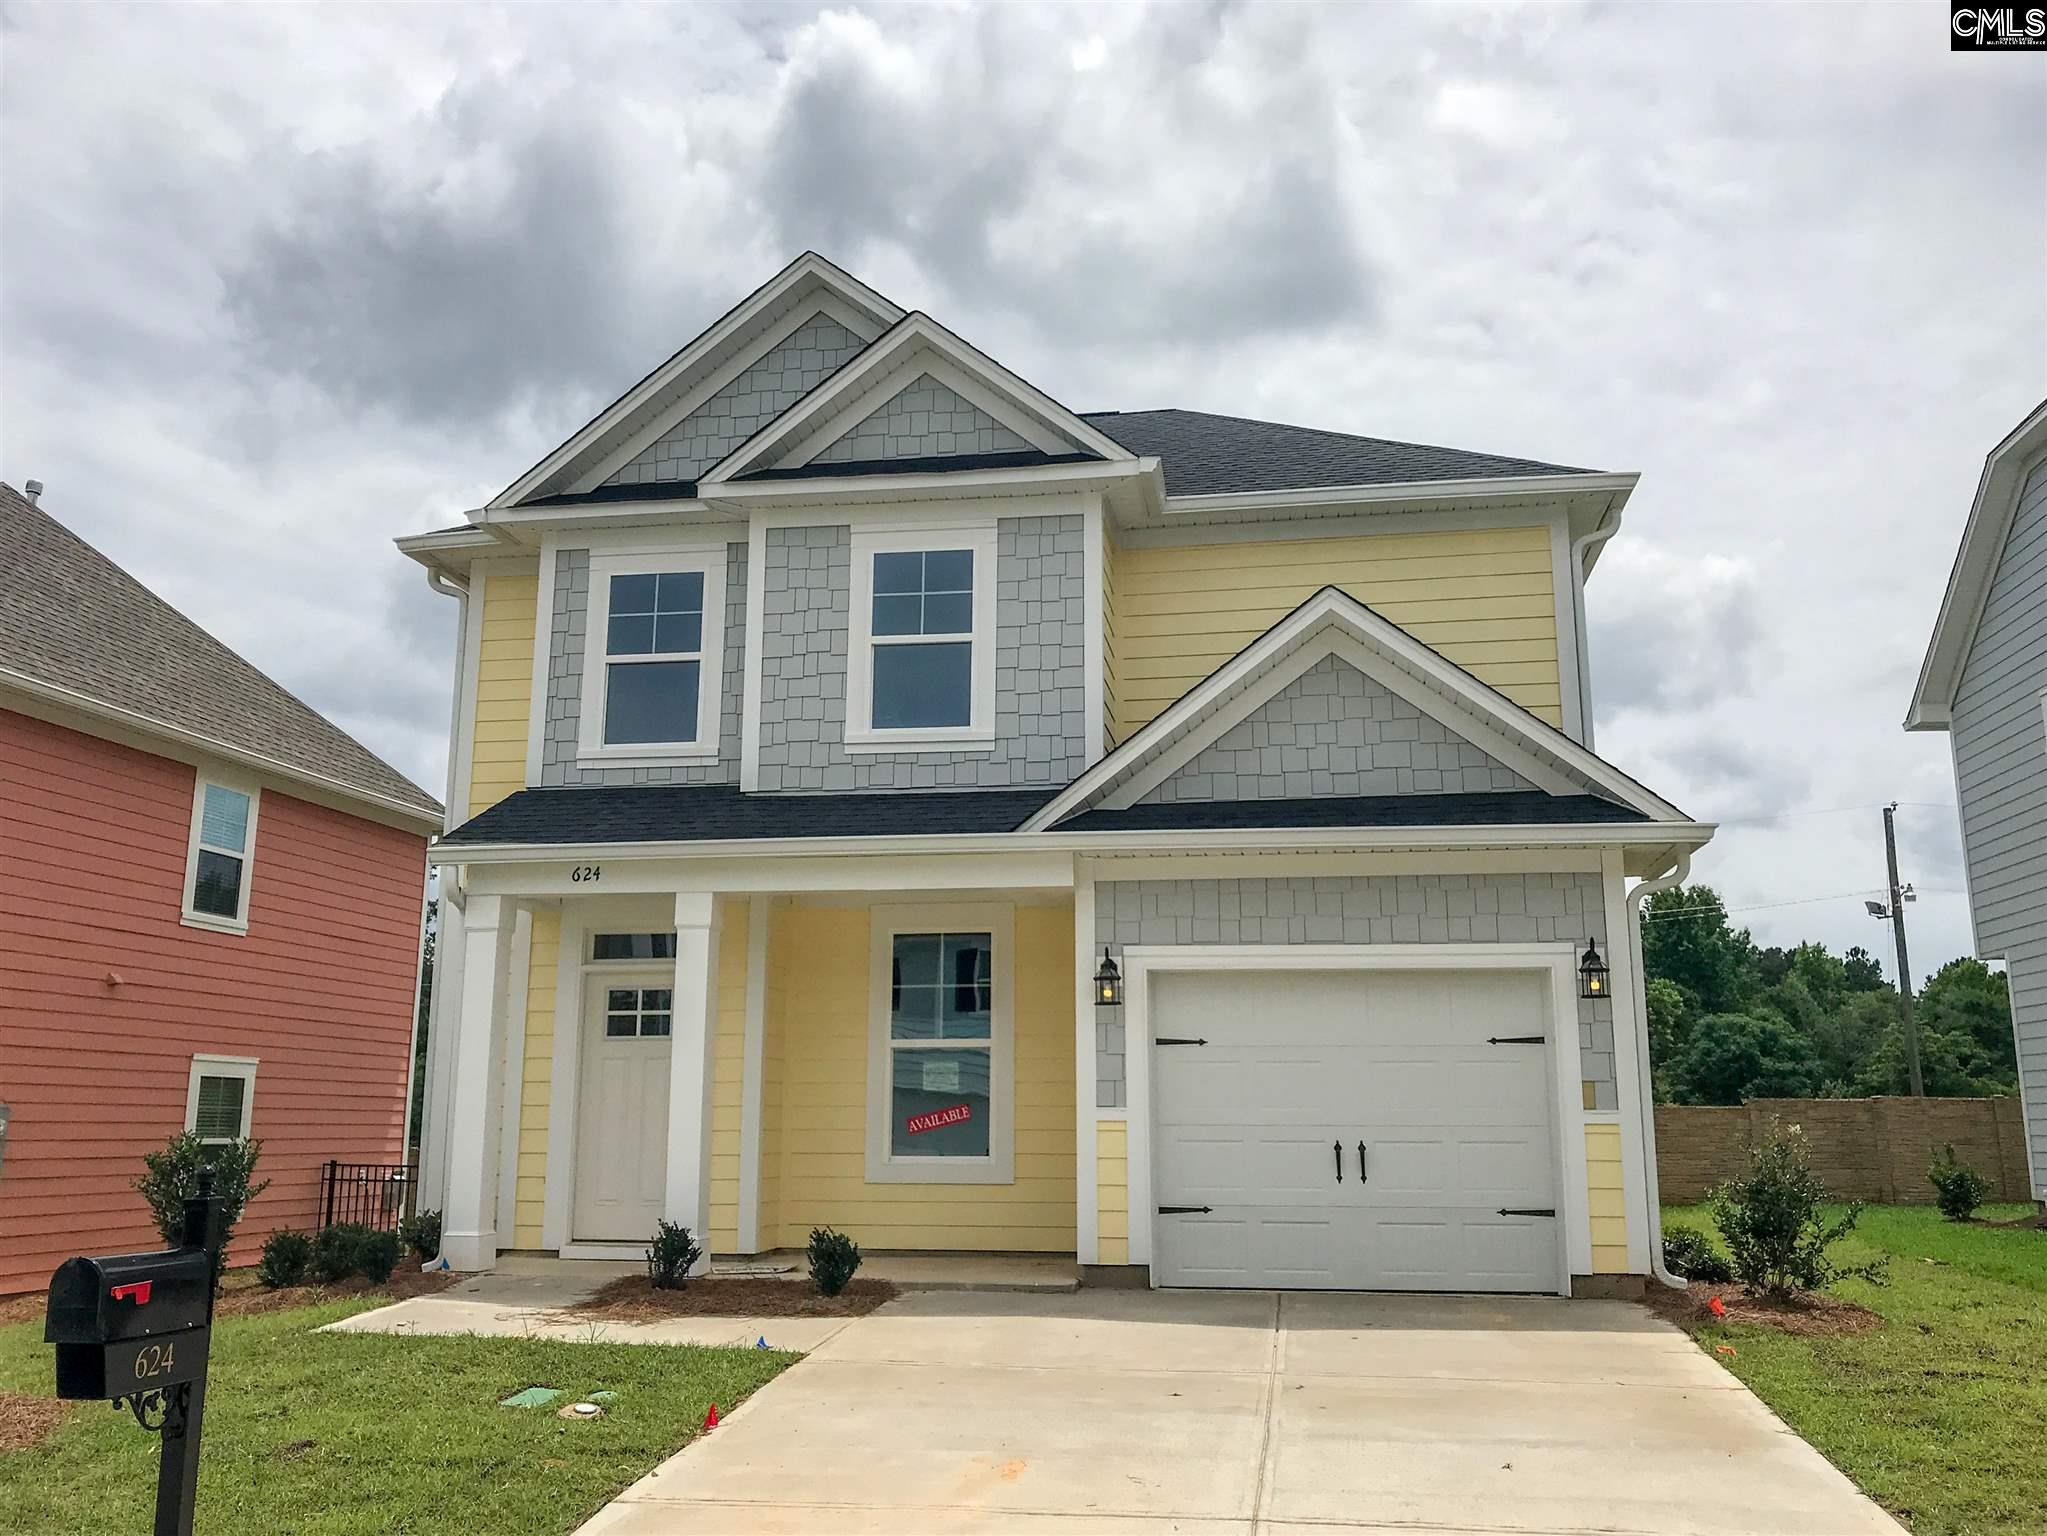 624 Pinnacle Lexington, SC 29072